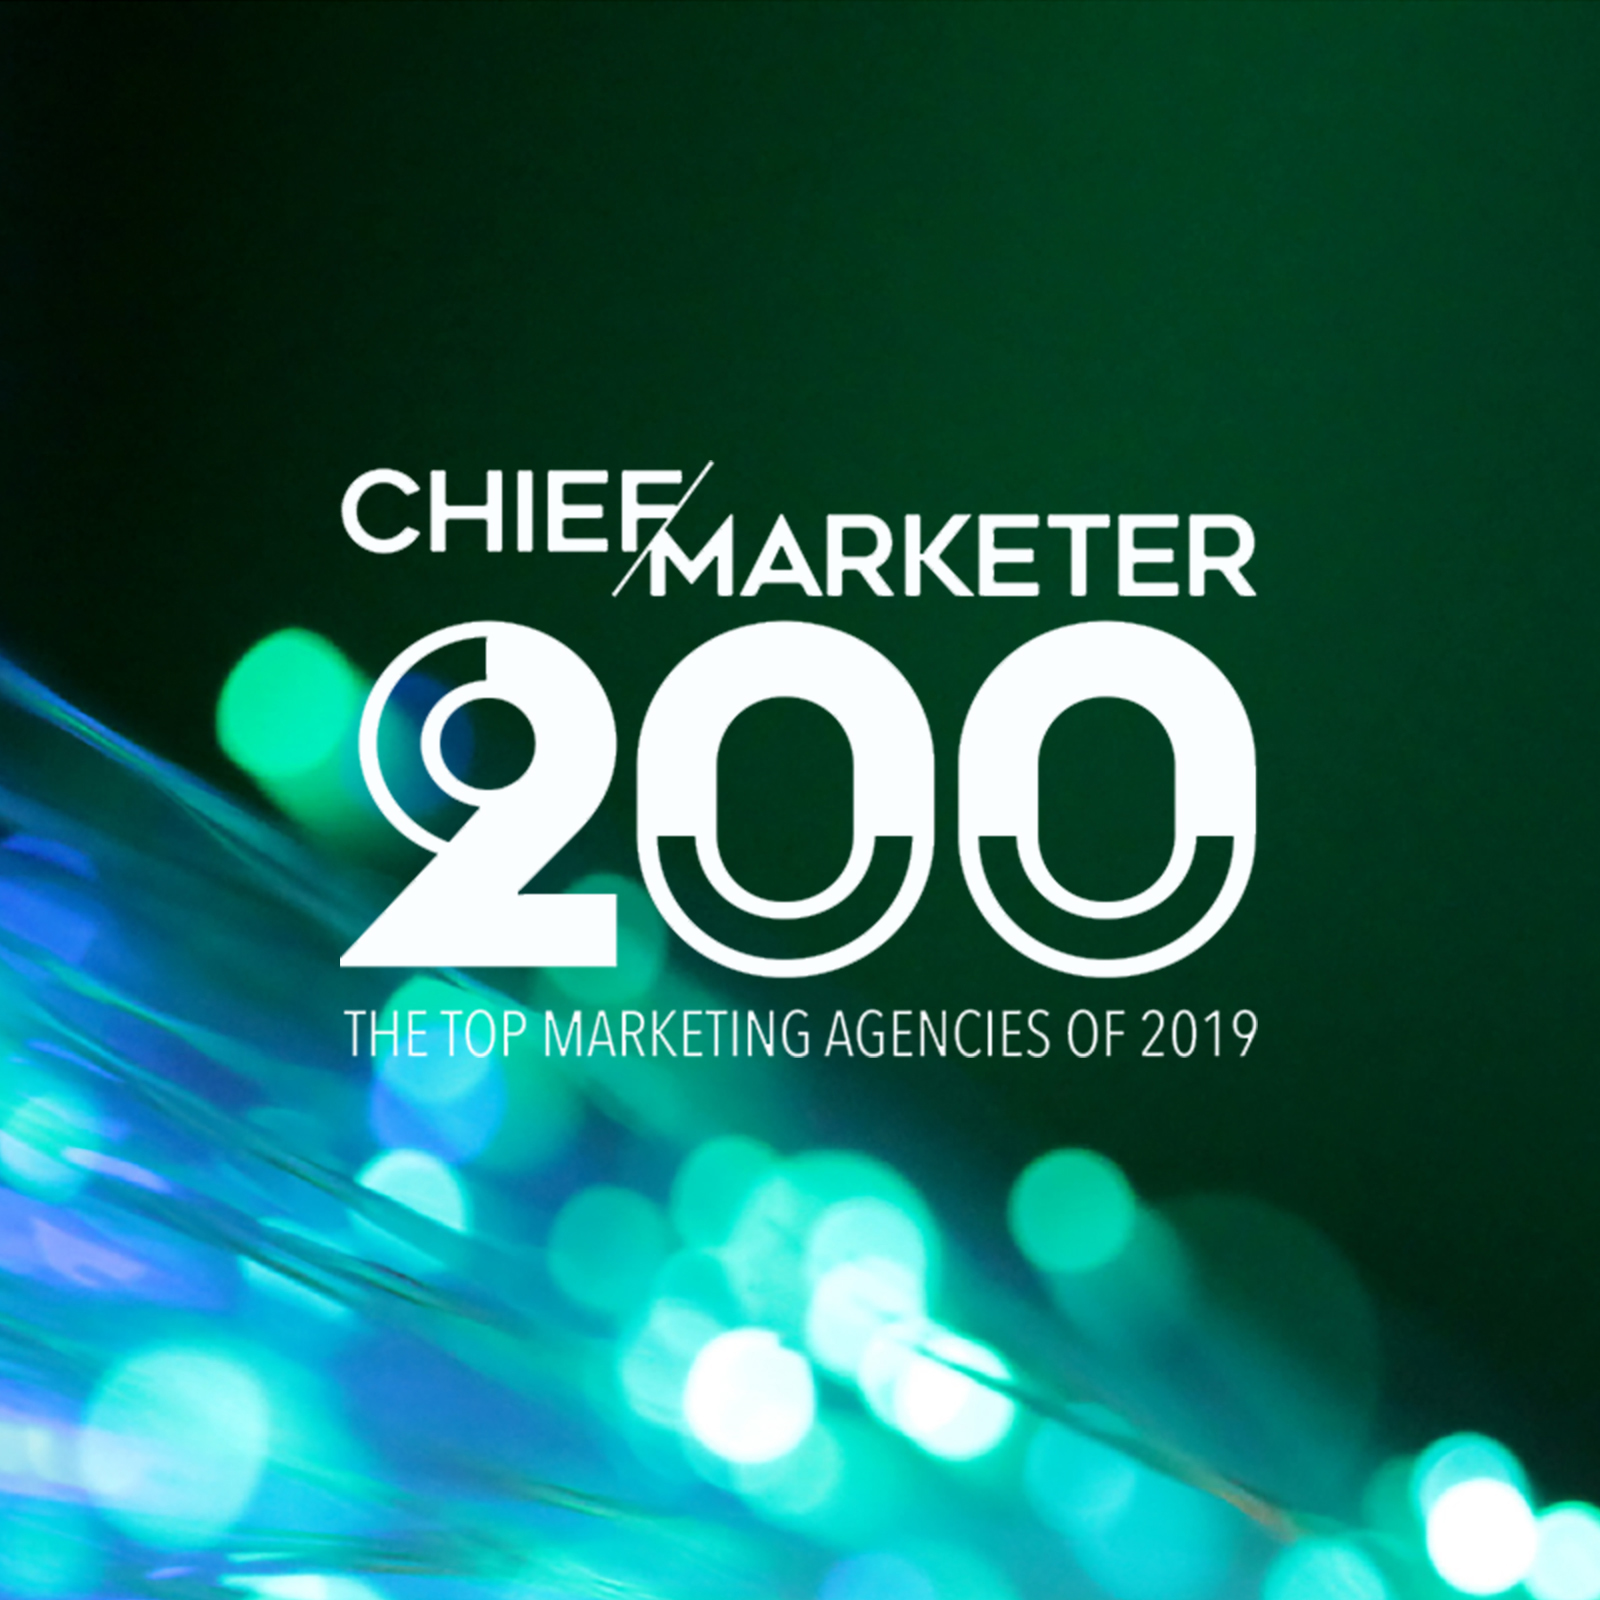 chief-marketer-200-graphic-2-3